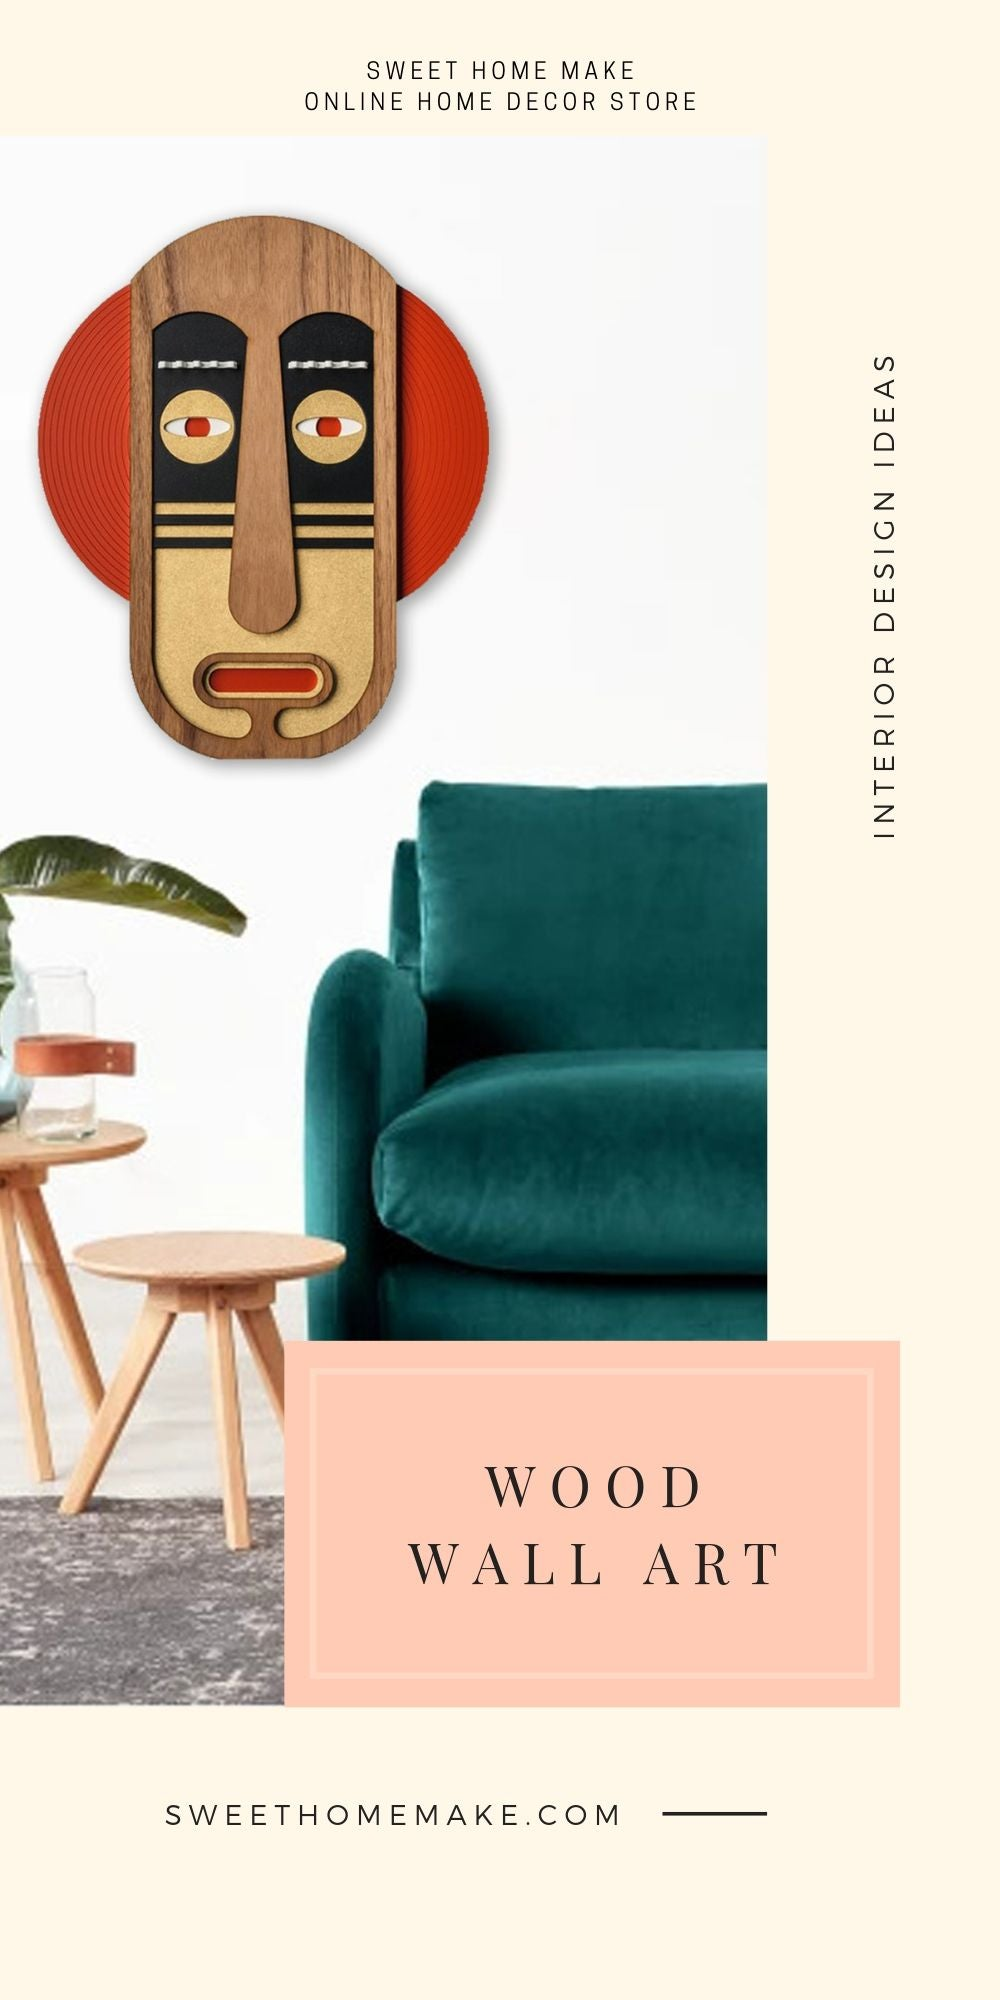 Cultural Face Wall Decor with Wood Wall Art